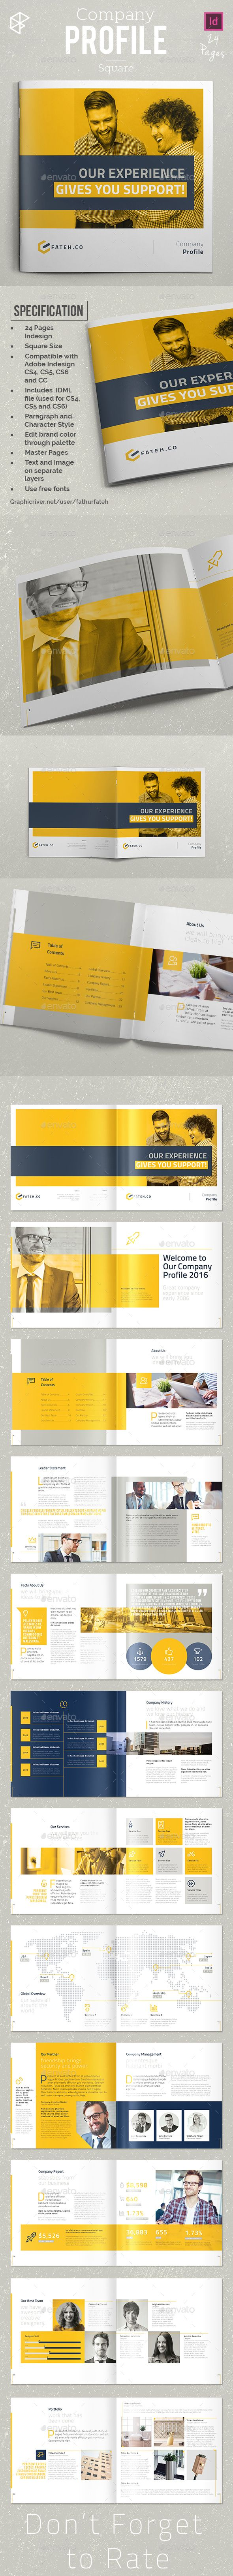 Square Company Profile Brochure Template InDesign INDD